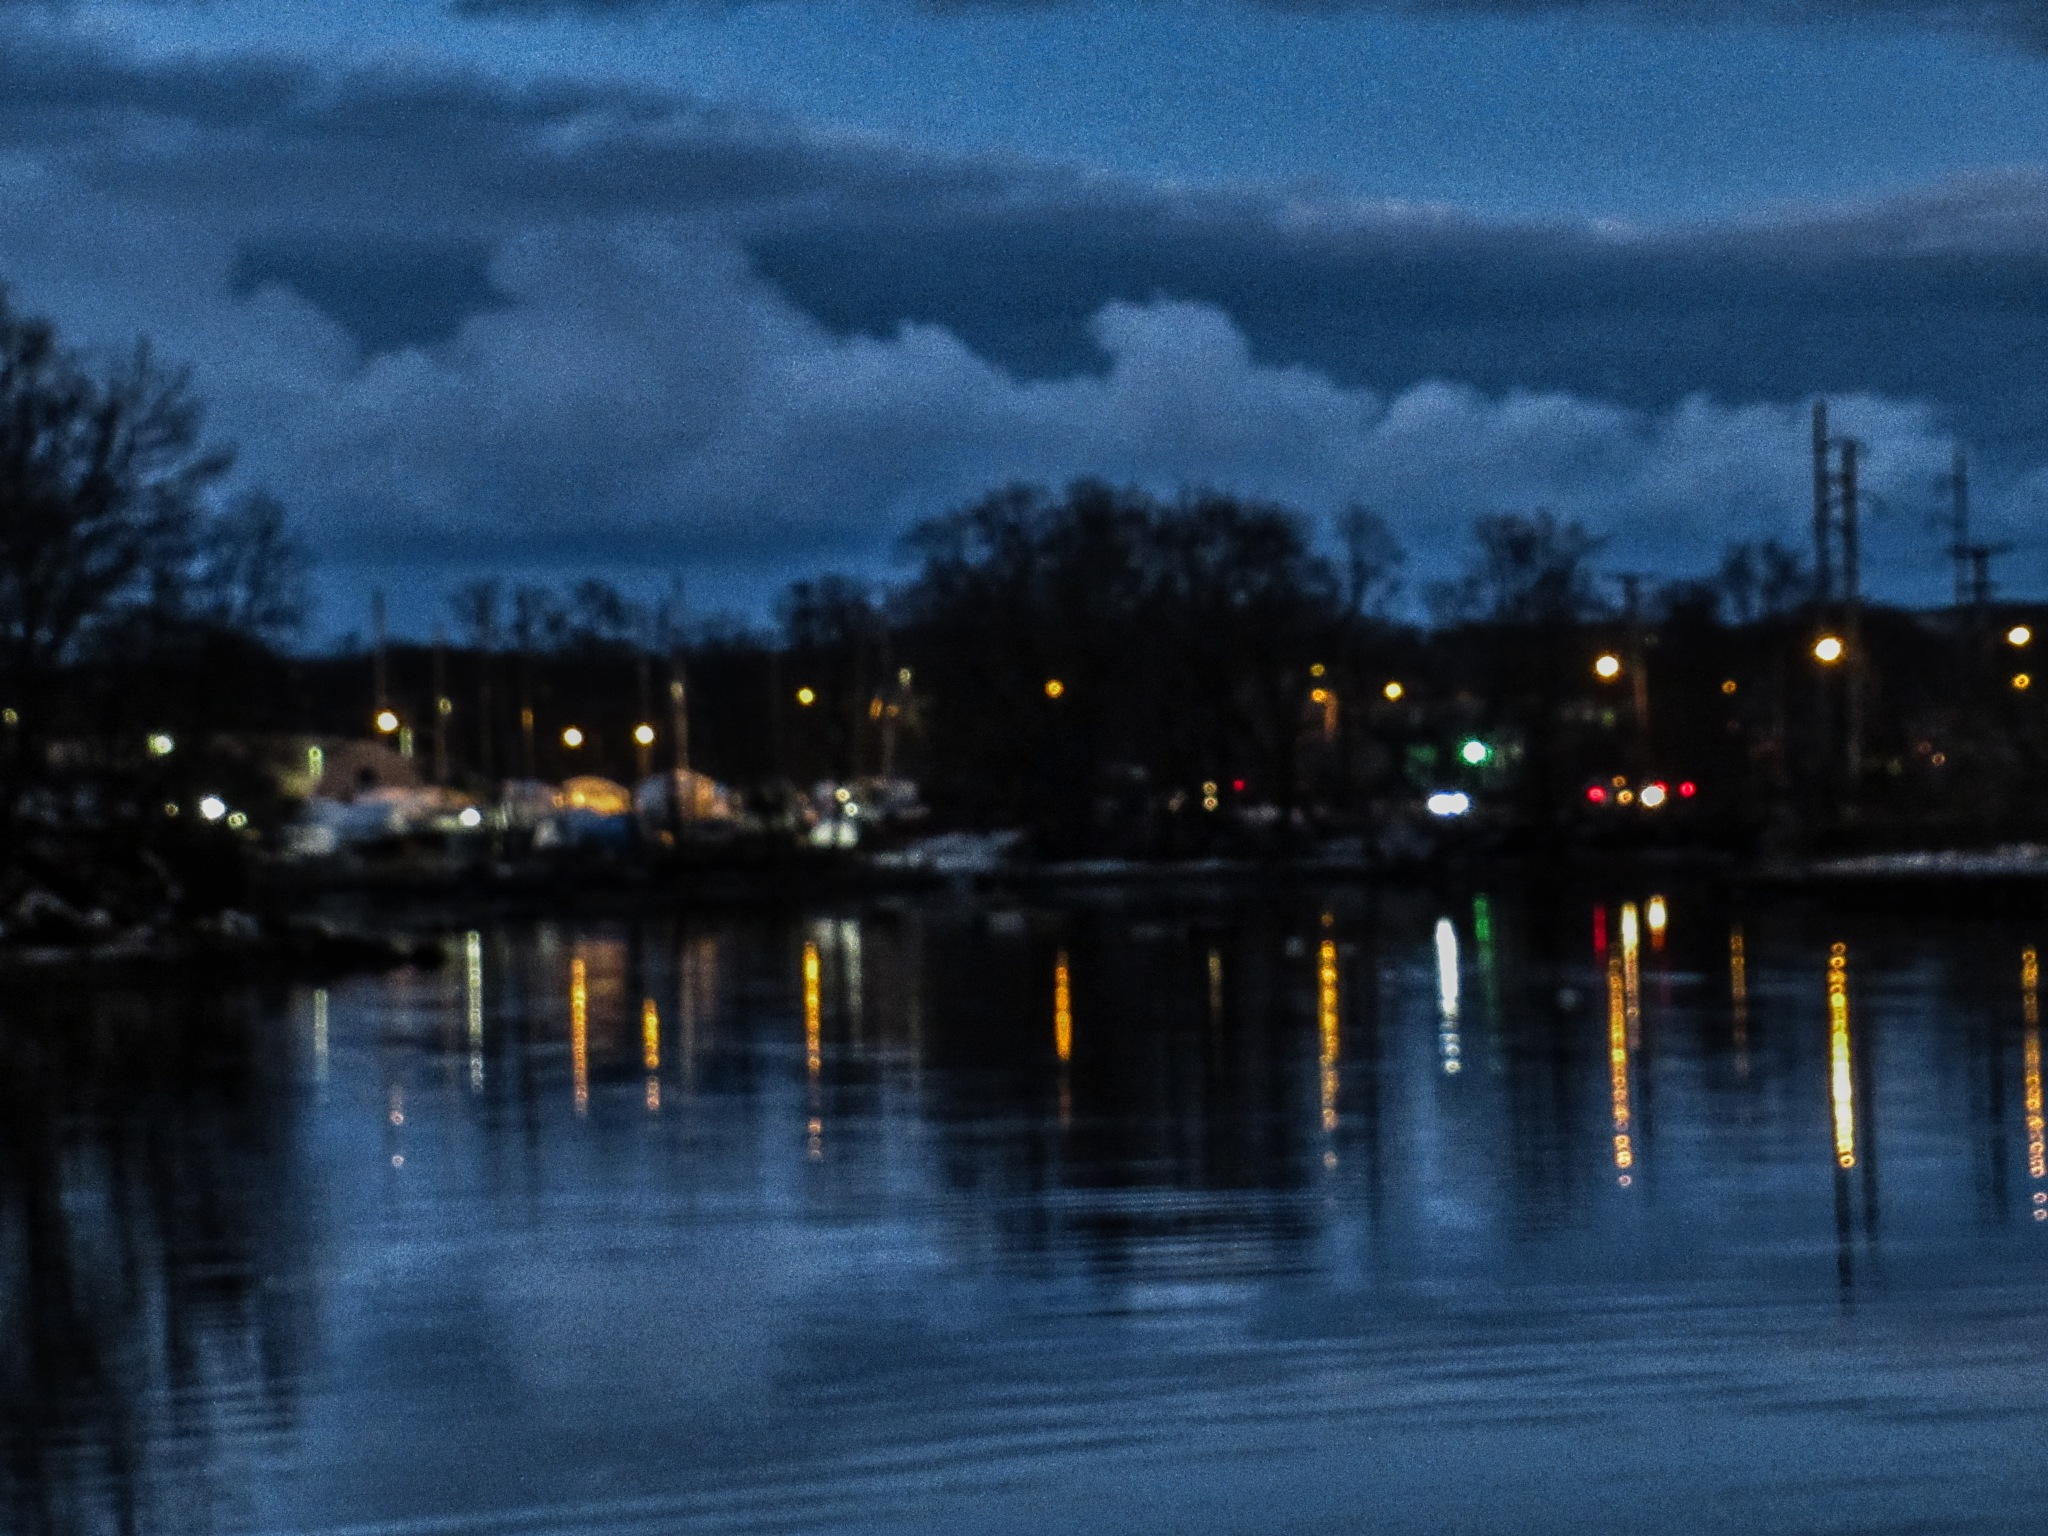 The Bass River at Night by D. Scott Hufford